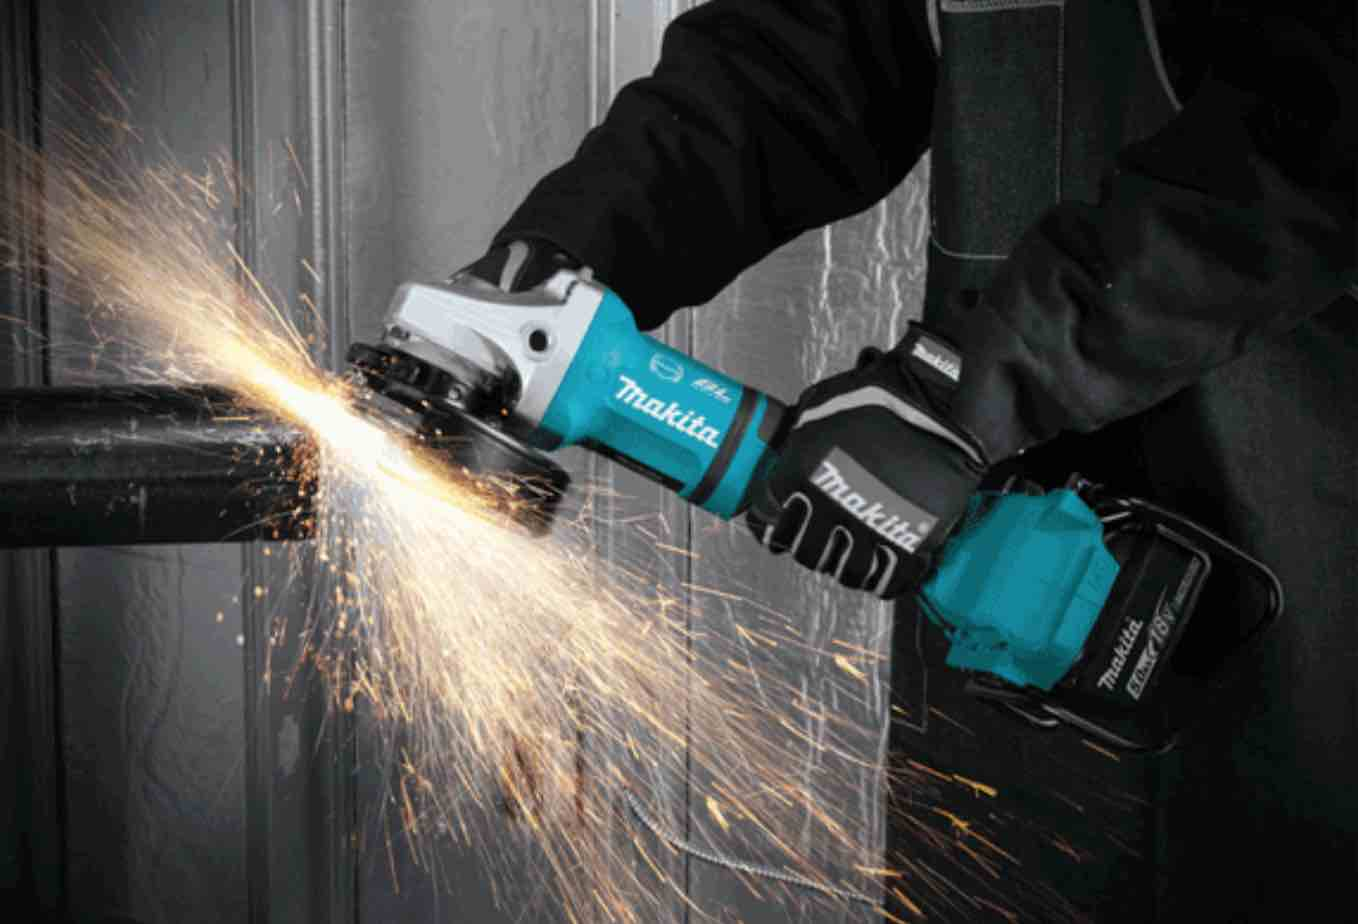 Buy Makita power tools From GZ industrial supplies in Nigeria